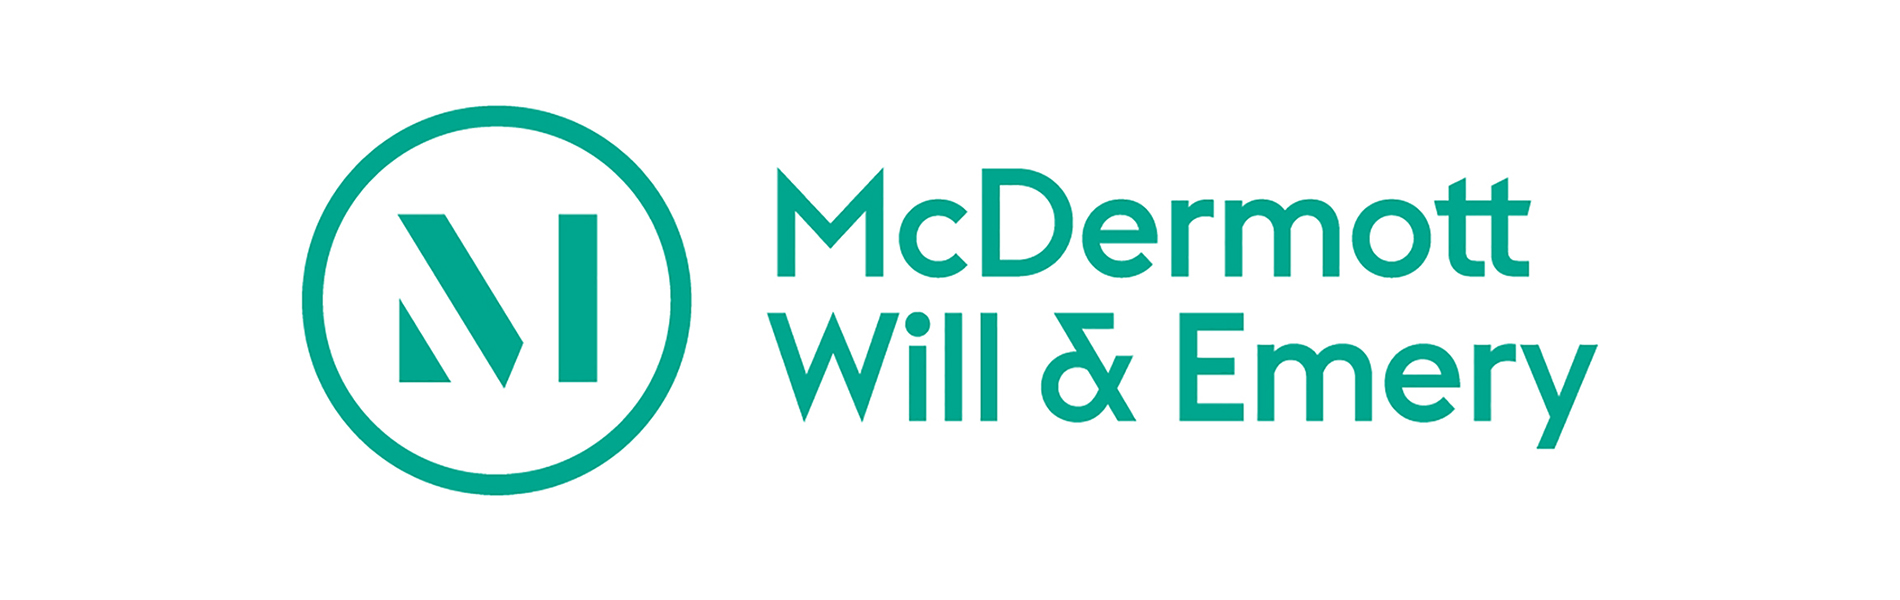 Banner image with McDermott Will & Emery LLP Inc. logo